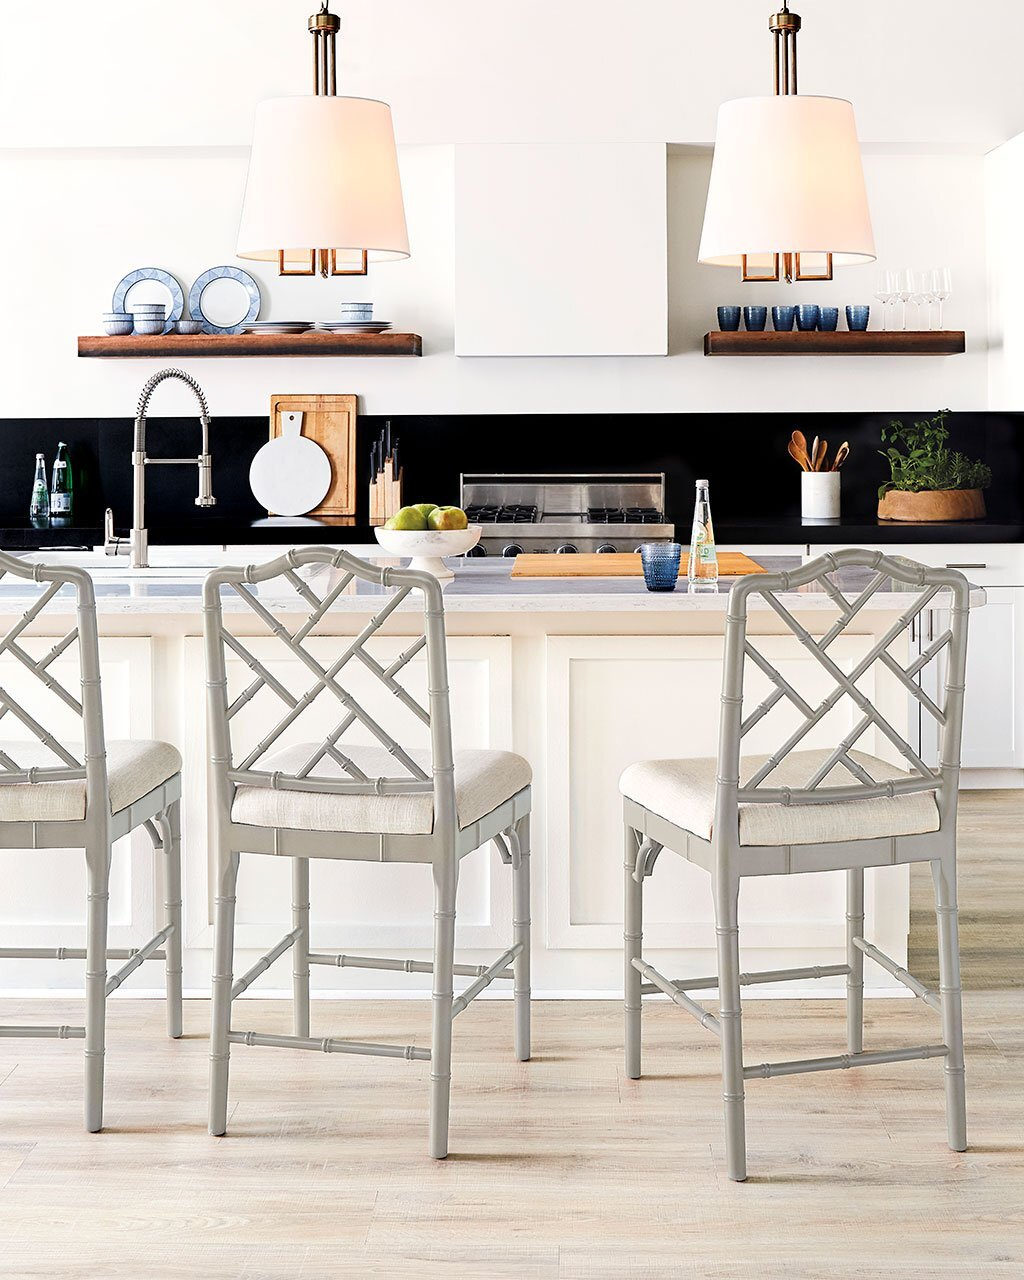 Best Barstools And Counter Height Stools For Kitchen Islands Br Dvd Interior Design